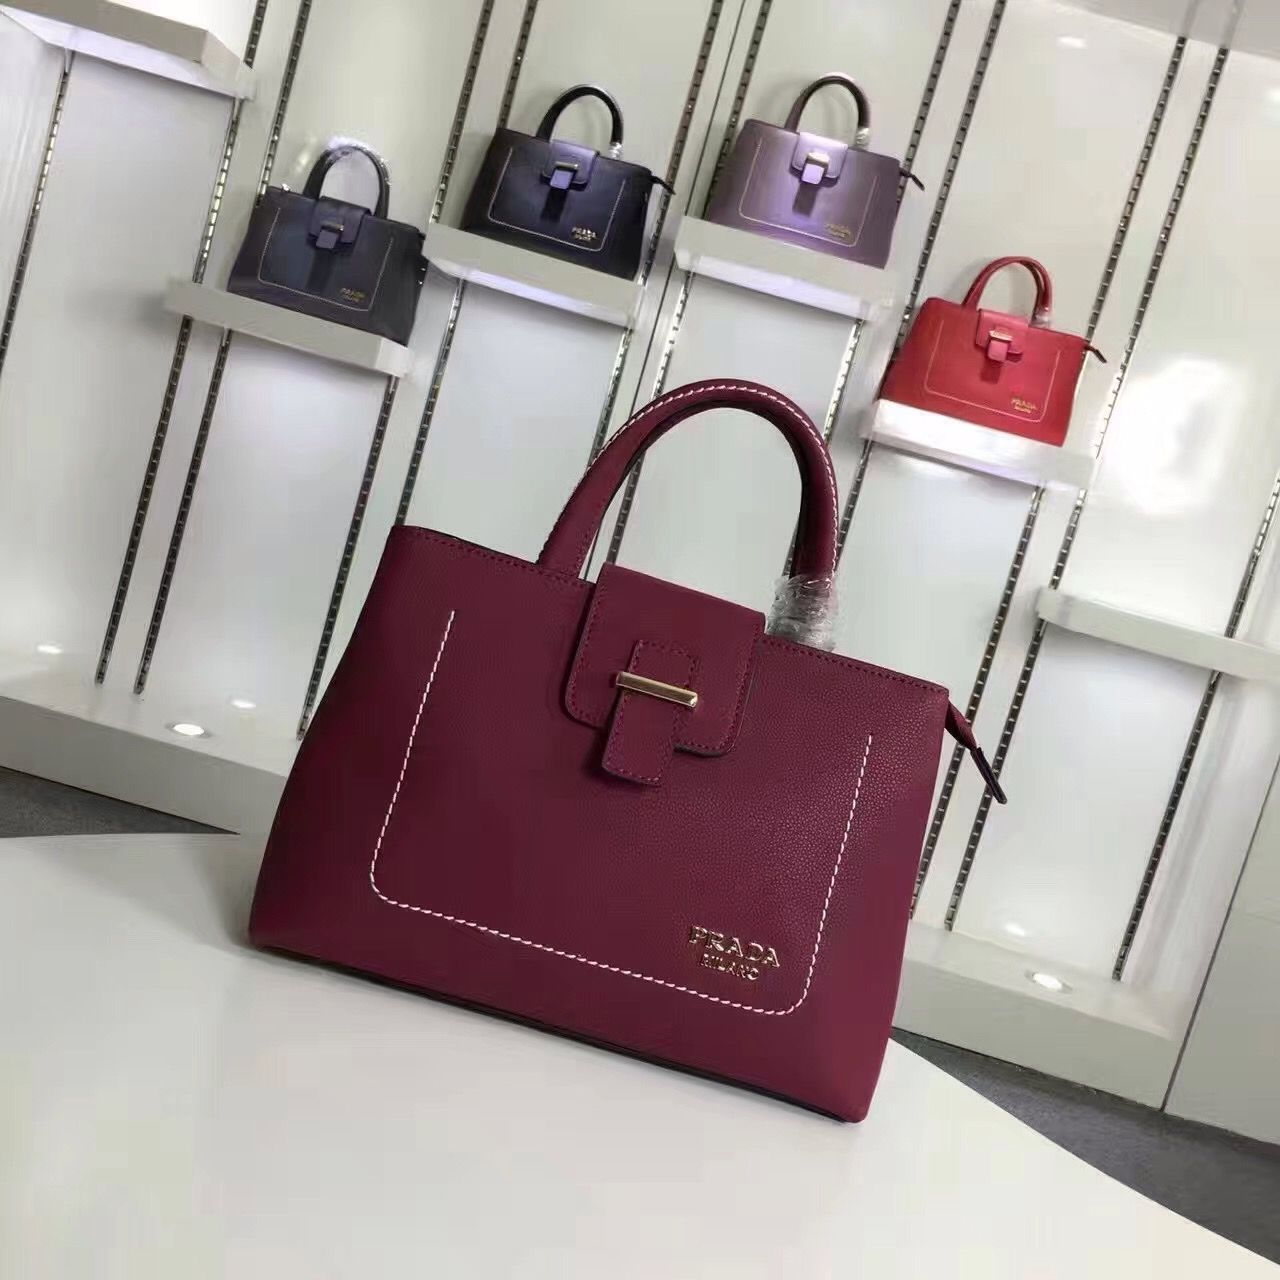 2a925055bb5a TaoBao Agent Leather Buckle, Leather Wallet, Buckle Bags, Gucci Wallet,  Handle,